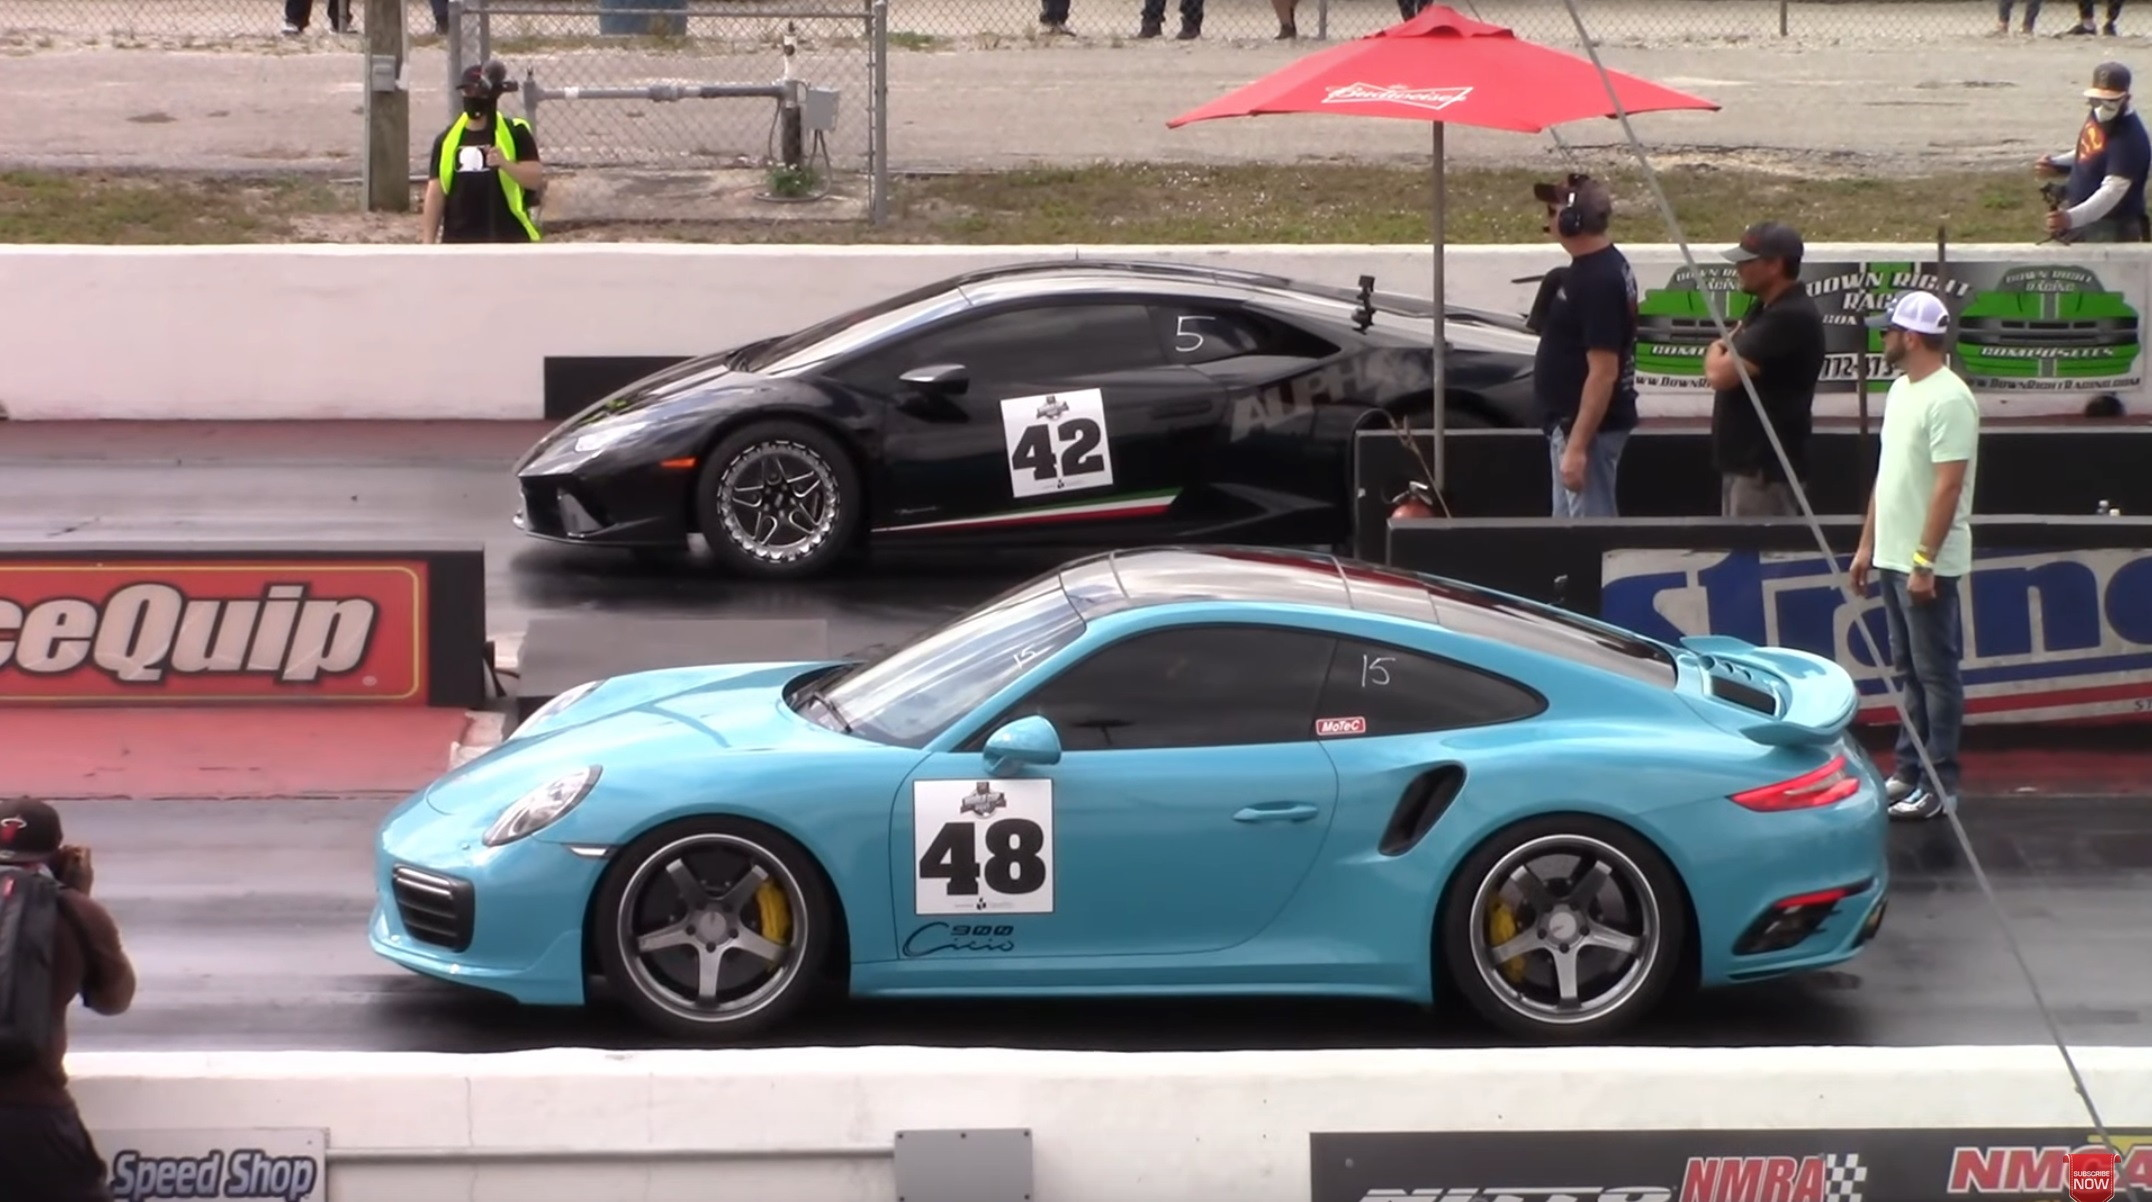 photo of Twin-Turbo Lambo Huracan Is an 8-Second Car, Destroys Porsche 911 Turbo S image